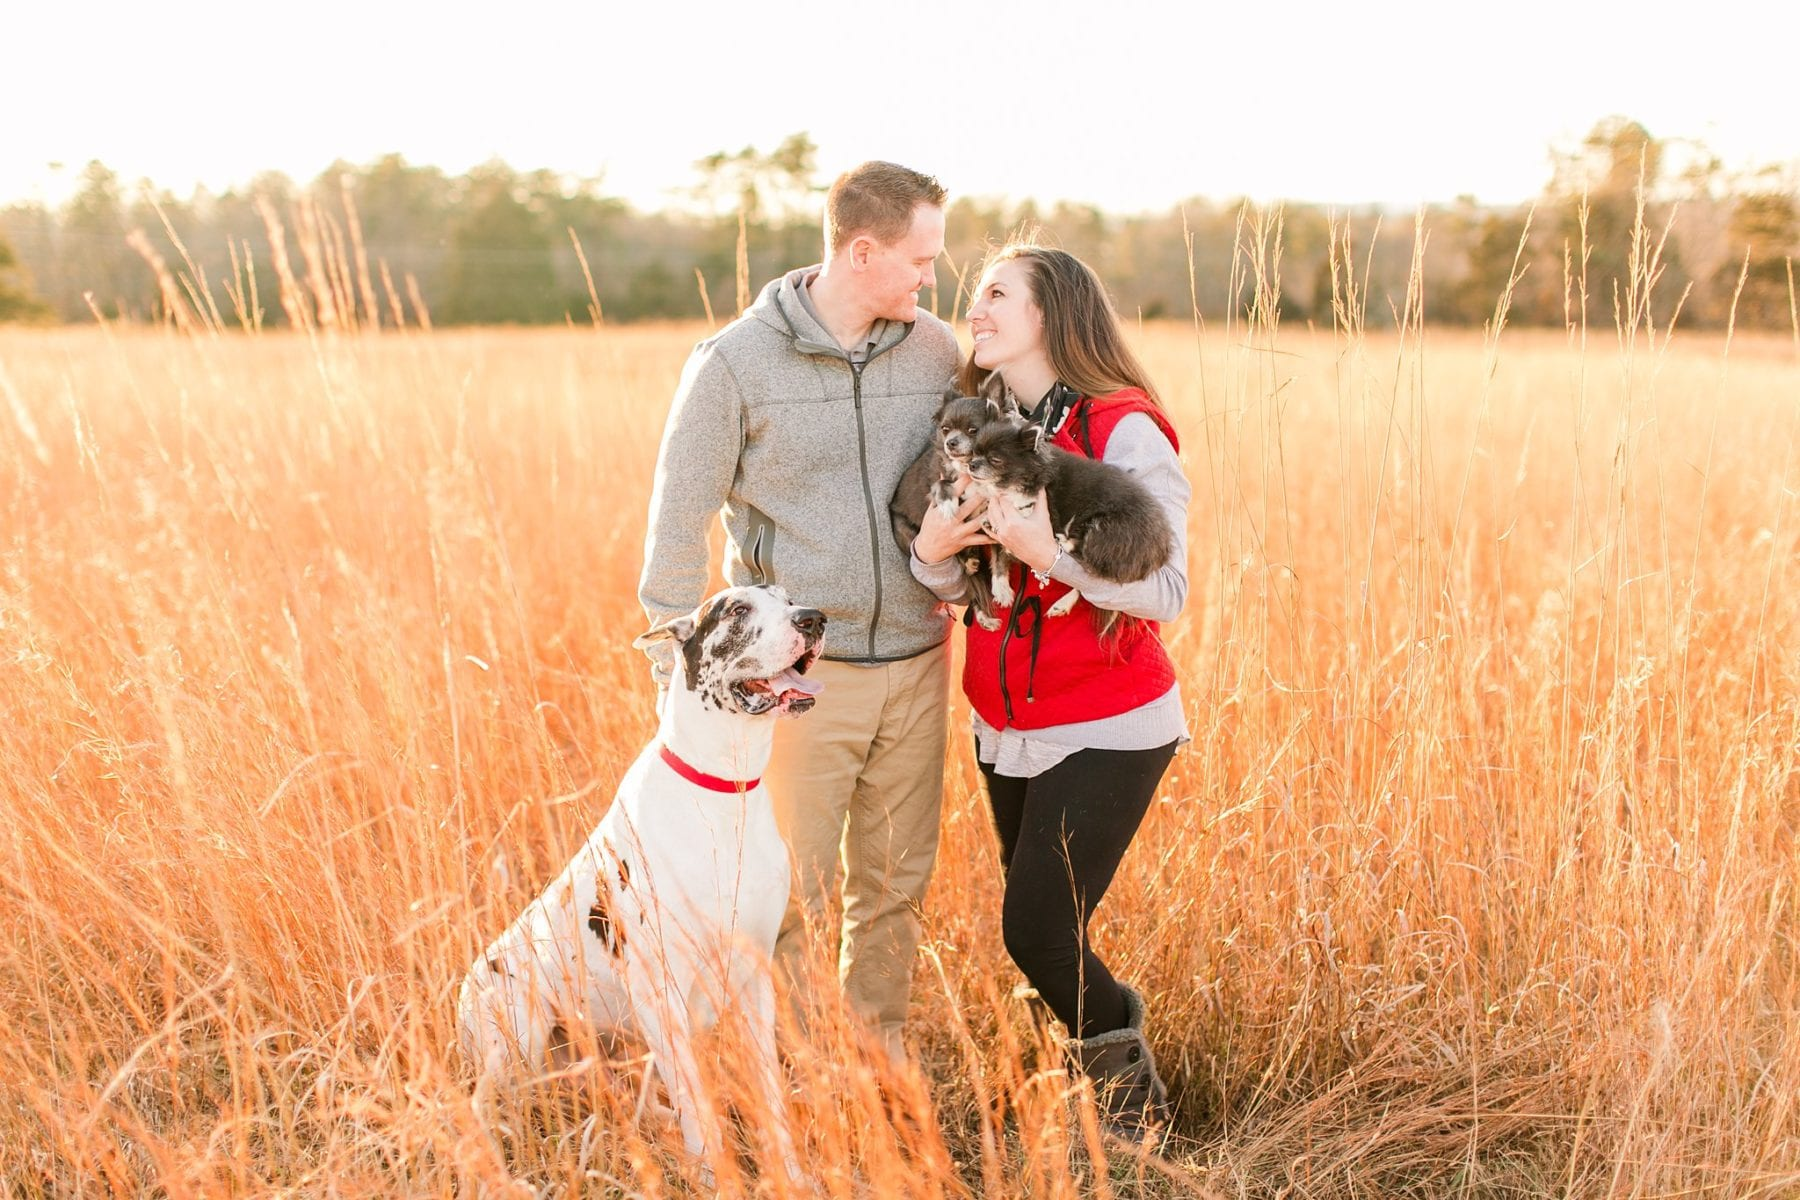 Firefighter Baby Announcement Virginia Photographer Megan Kelsey Photography Jeromy & Becky-106.jpg